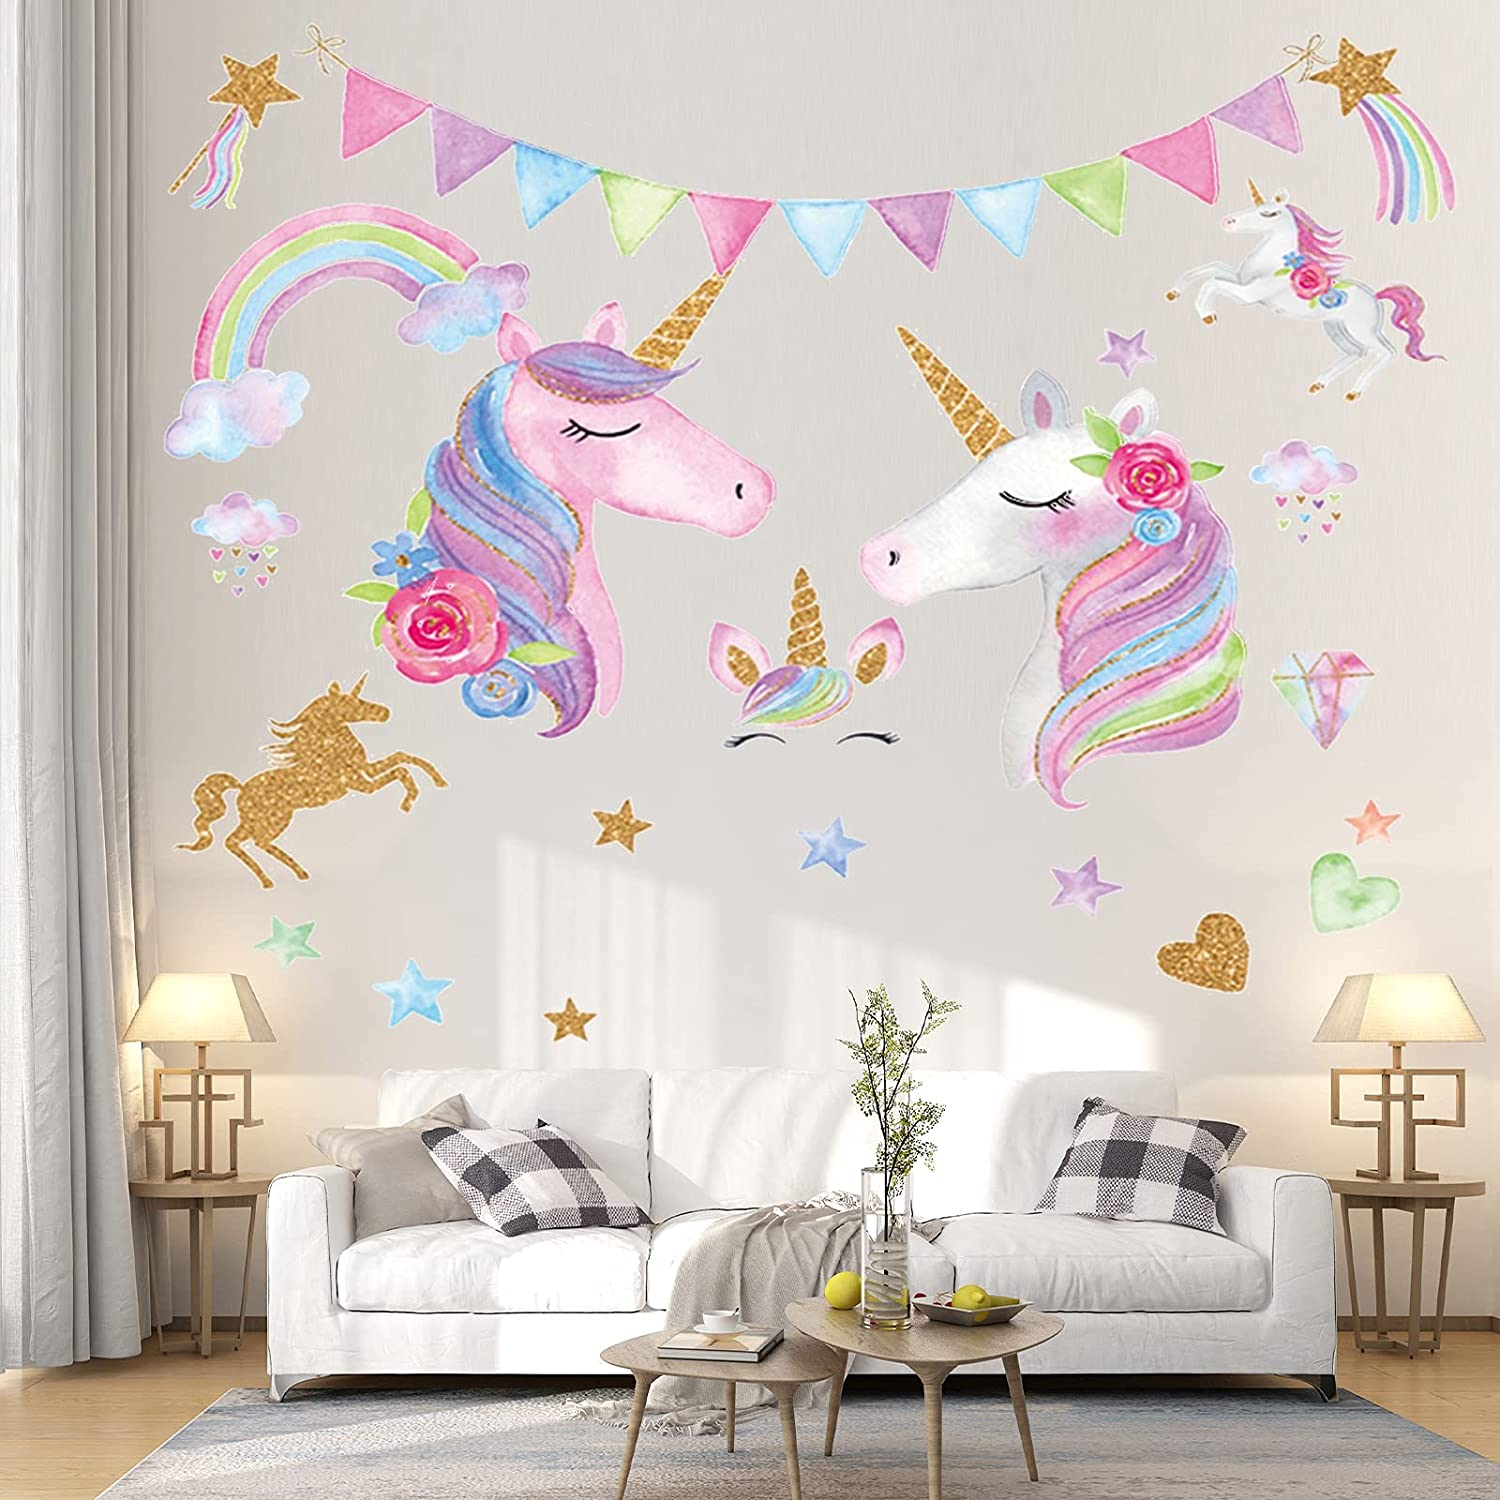 4 Sheets Unicorn Wall Decals Removable Unicorn DIY Wall Stickers Unicorn Wall Decor Home Decor Girls Kids Nursery Room Bedroom Decor Living Room Decor Party Decoration